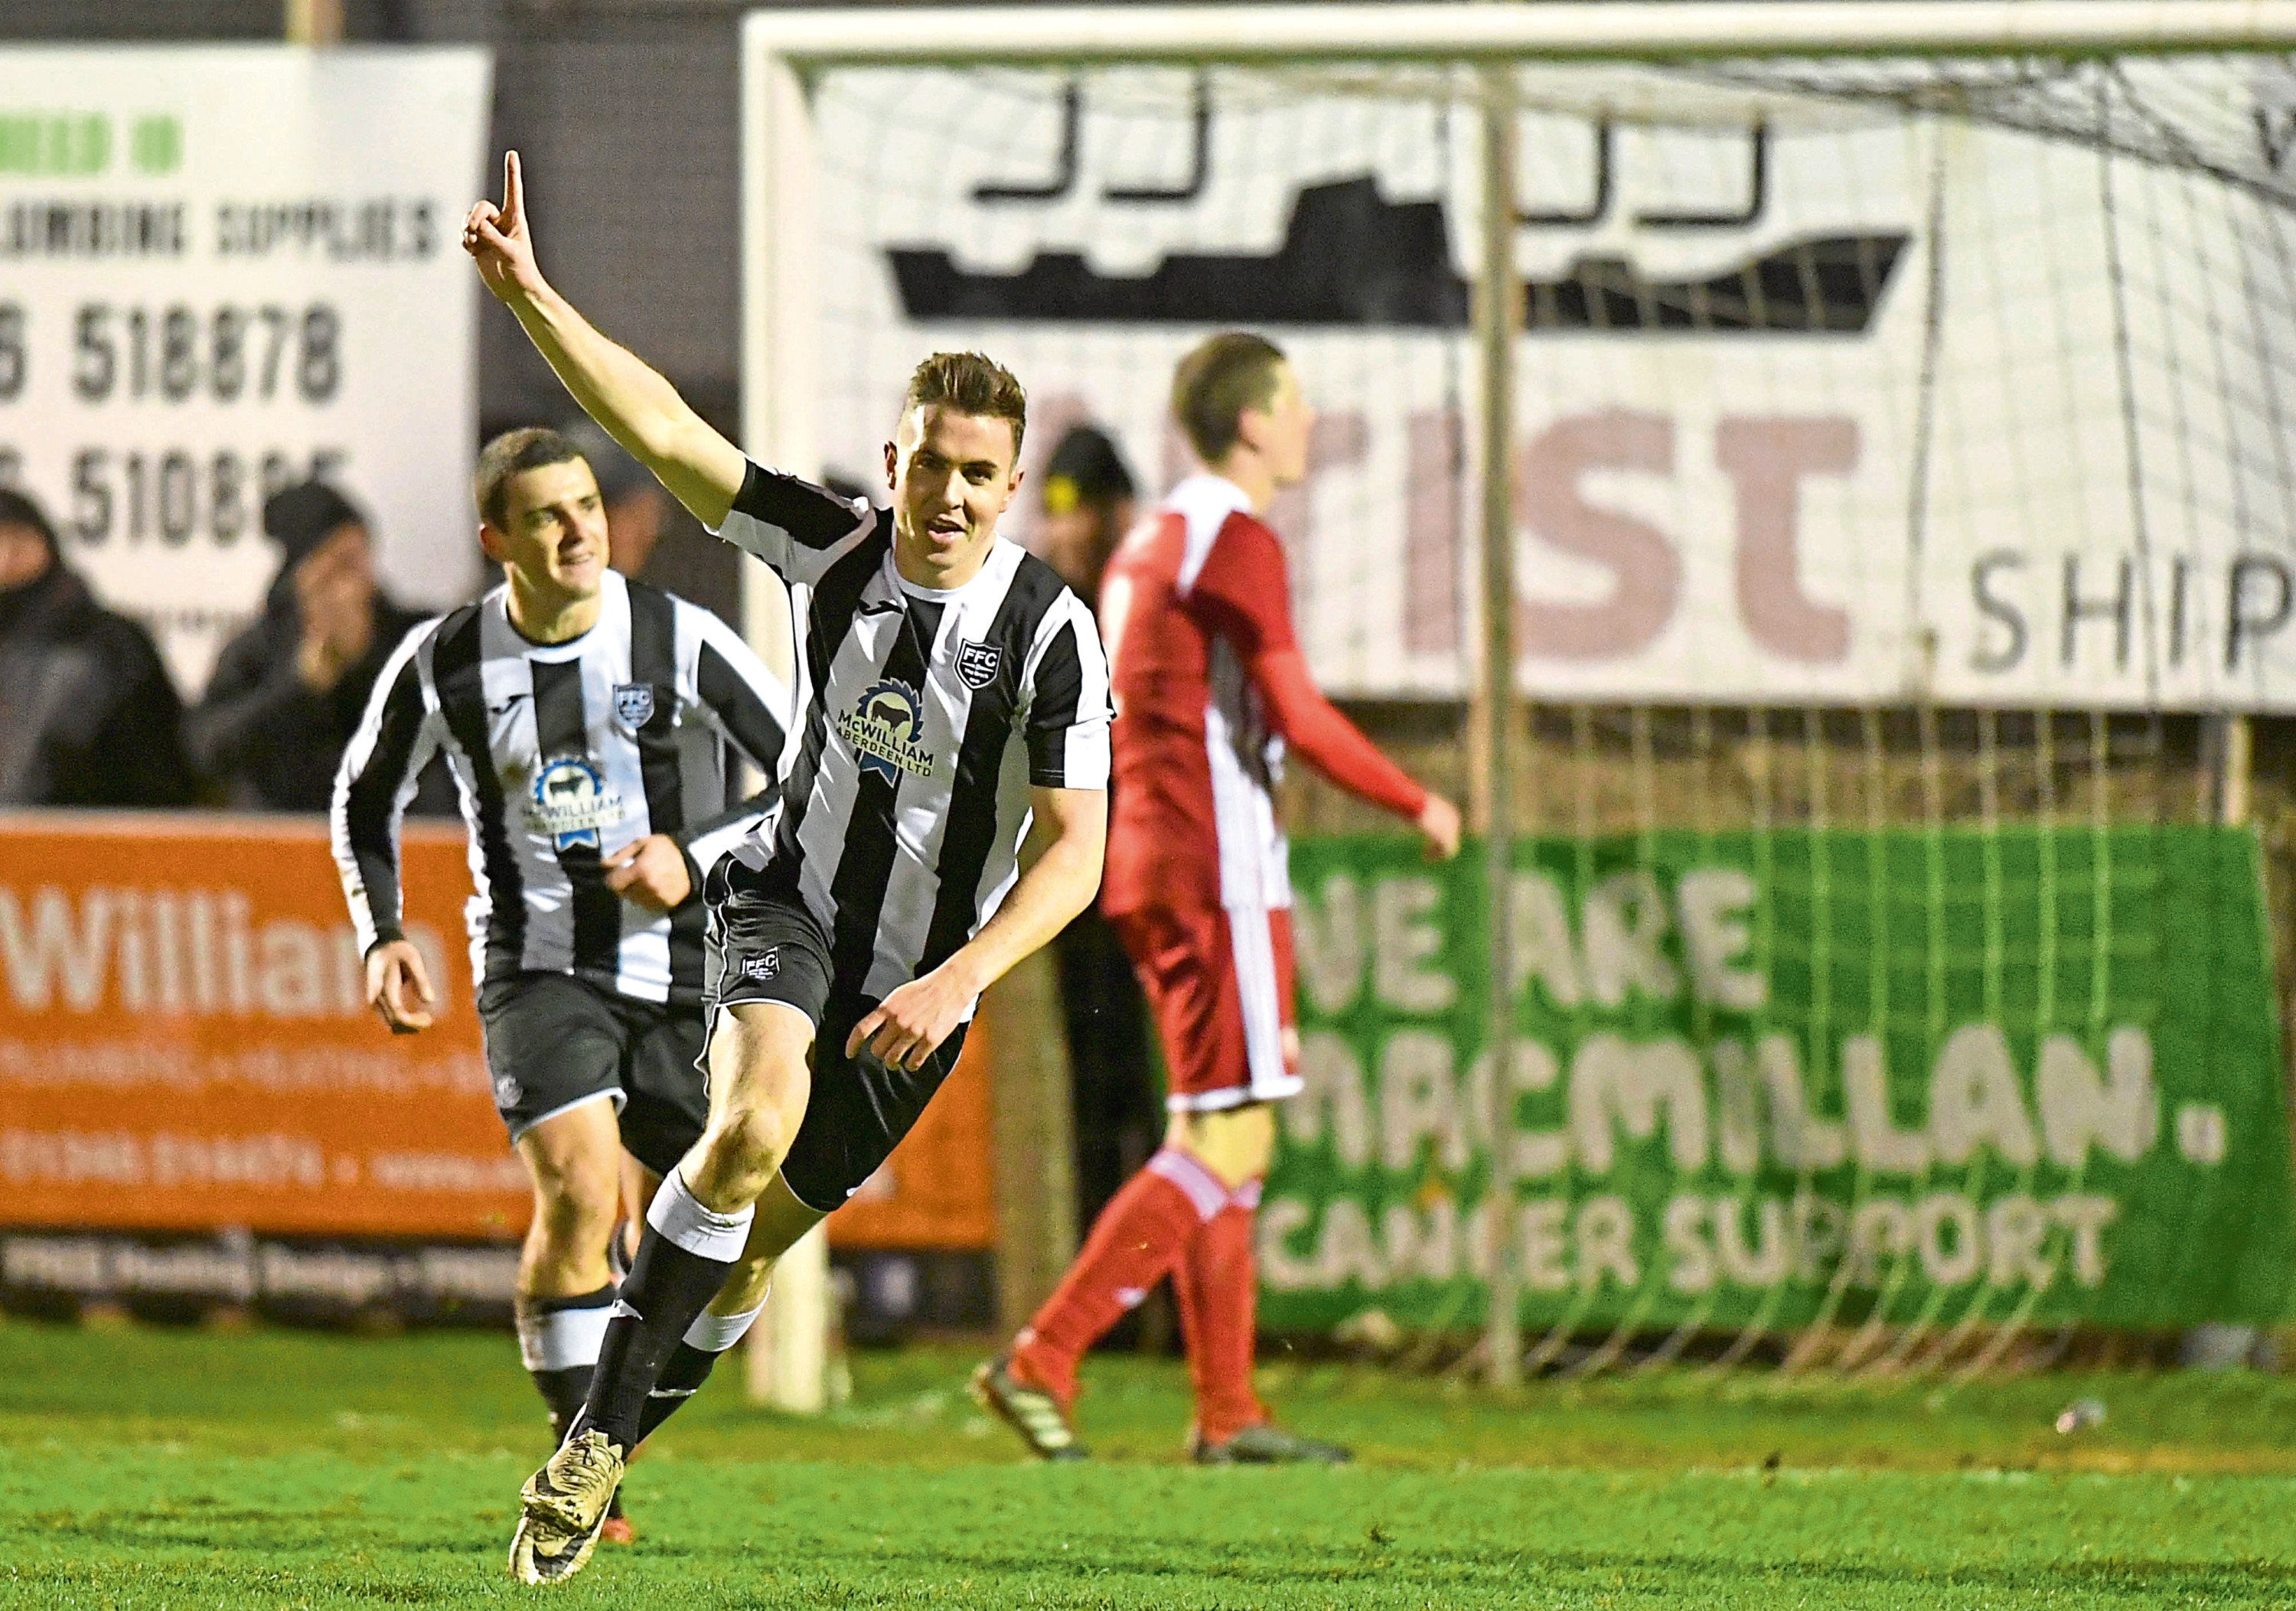 Paul Campbell celebrates scoring for Fraserburgh in their midweek Aberdeenshire Shield win.